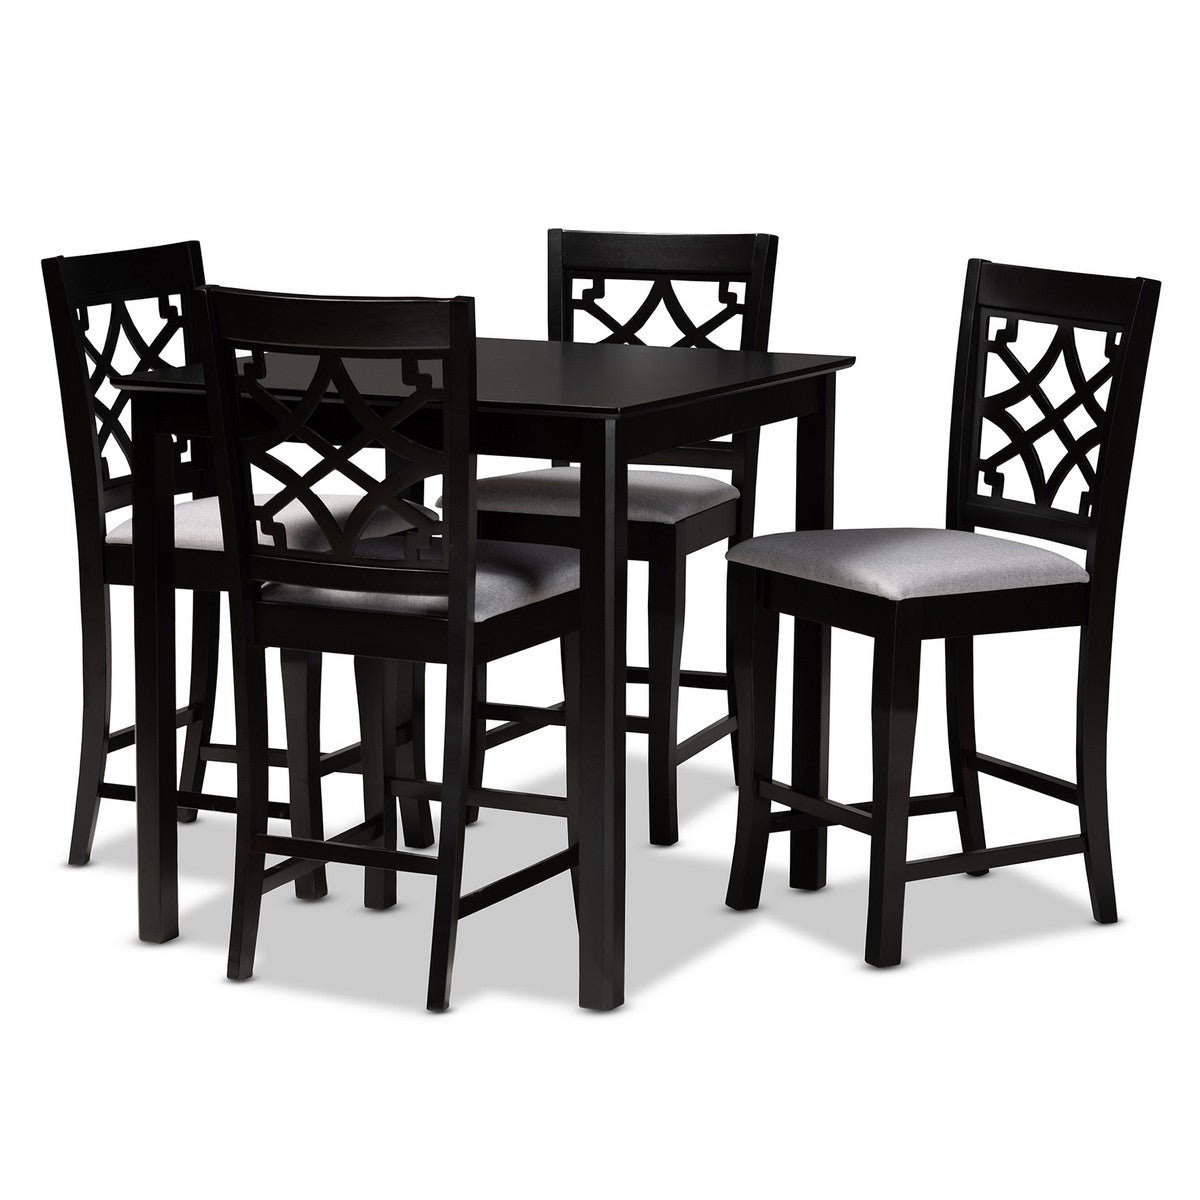 Baxton Studio Nisa Modern and Contemporary Grey Fabric Upholstered Espresso Brown Finished 5-Piece Wood Pub Set Baxton Studio-Pub Sets-Minimal And Modern - 1